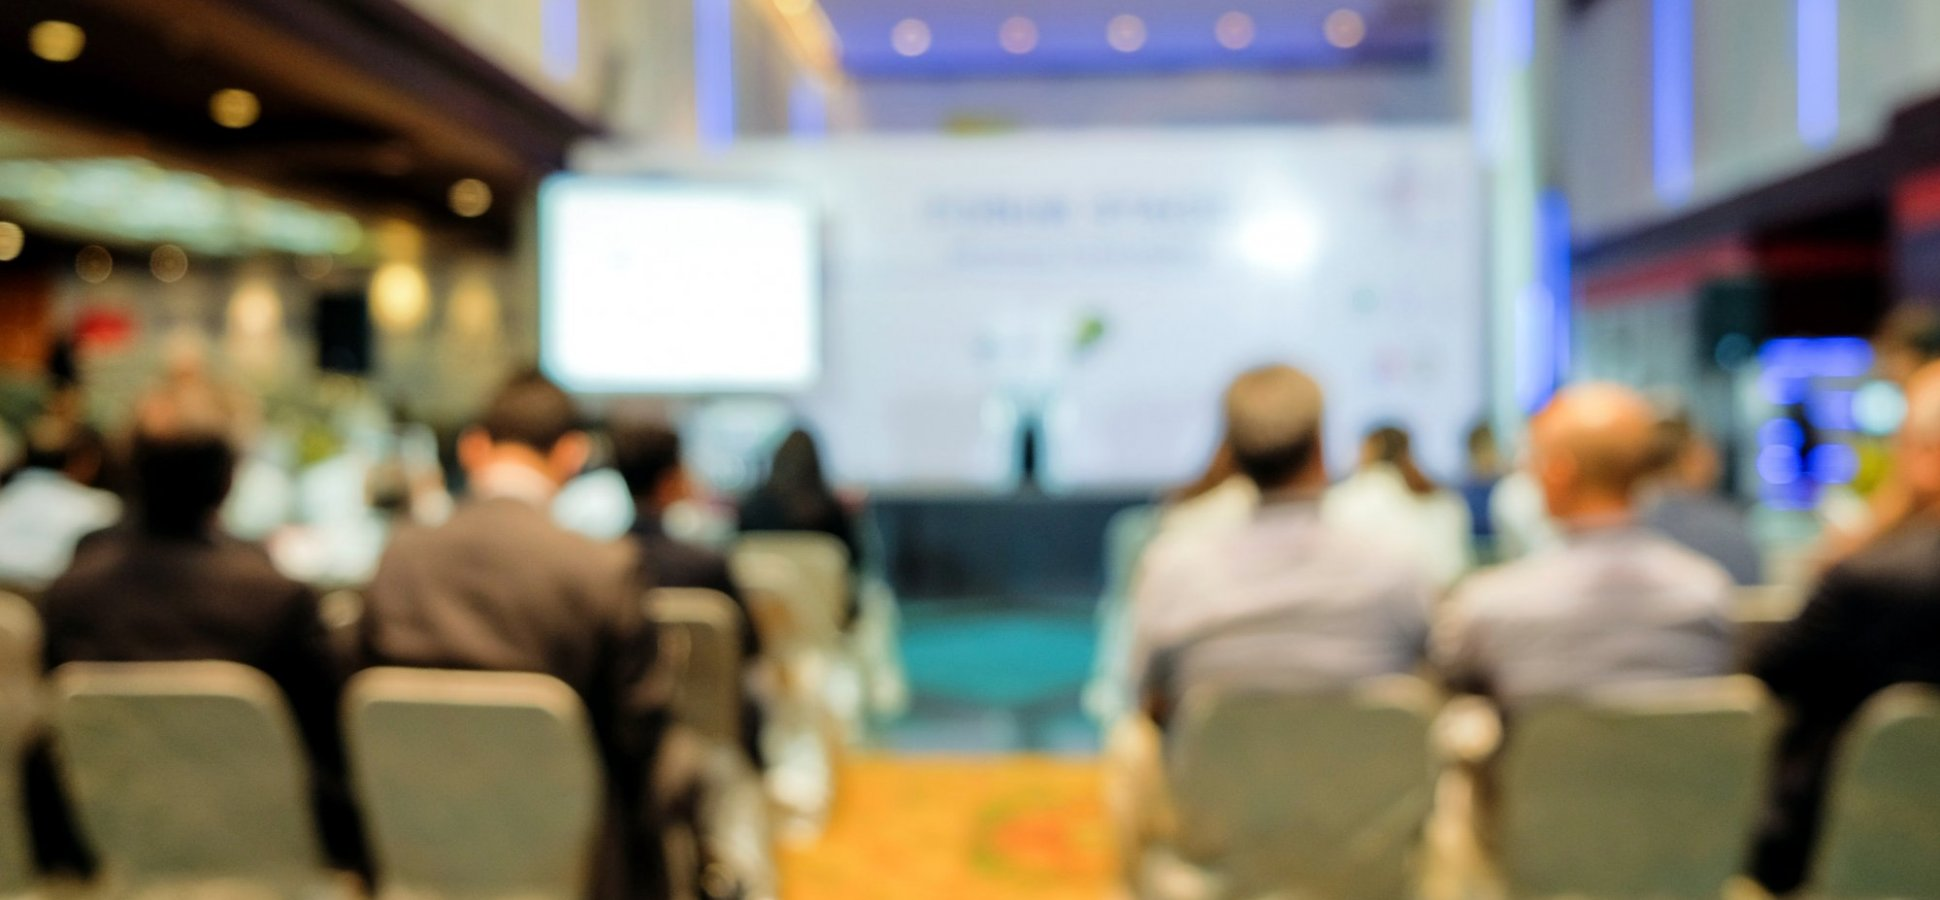 8 Great Tips for Planning an Event People Will Want to Attend